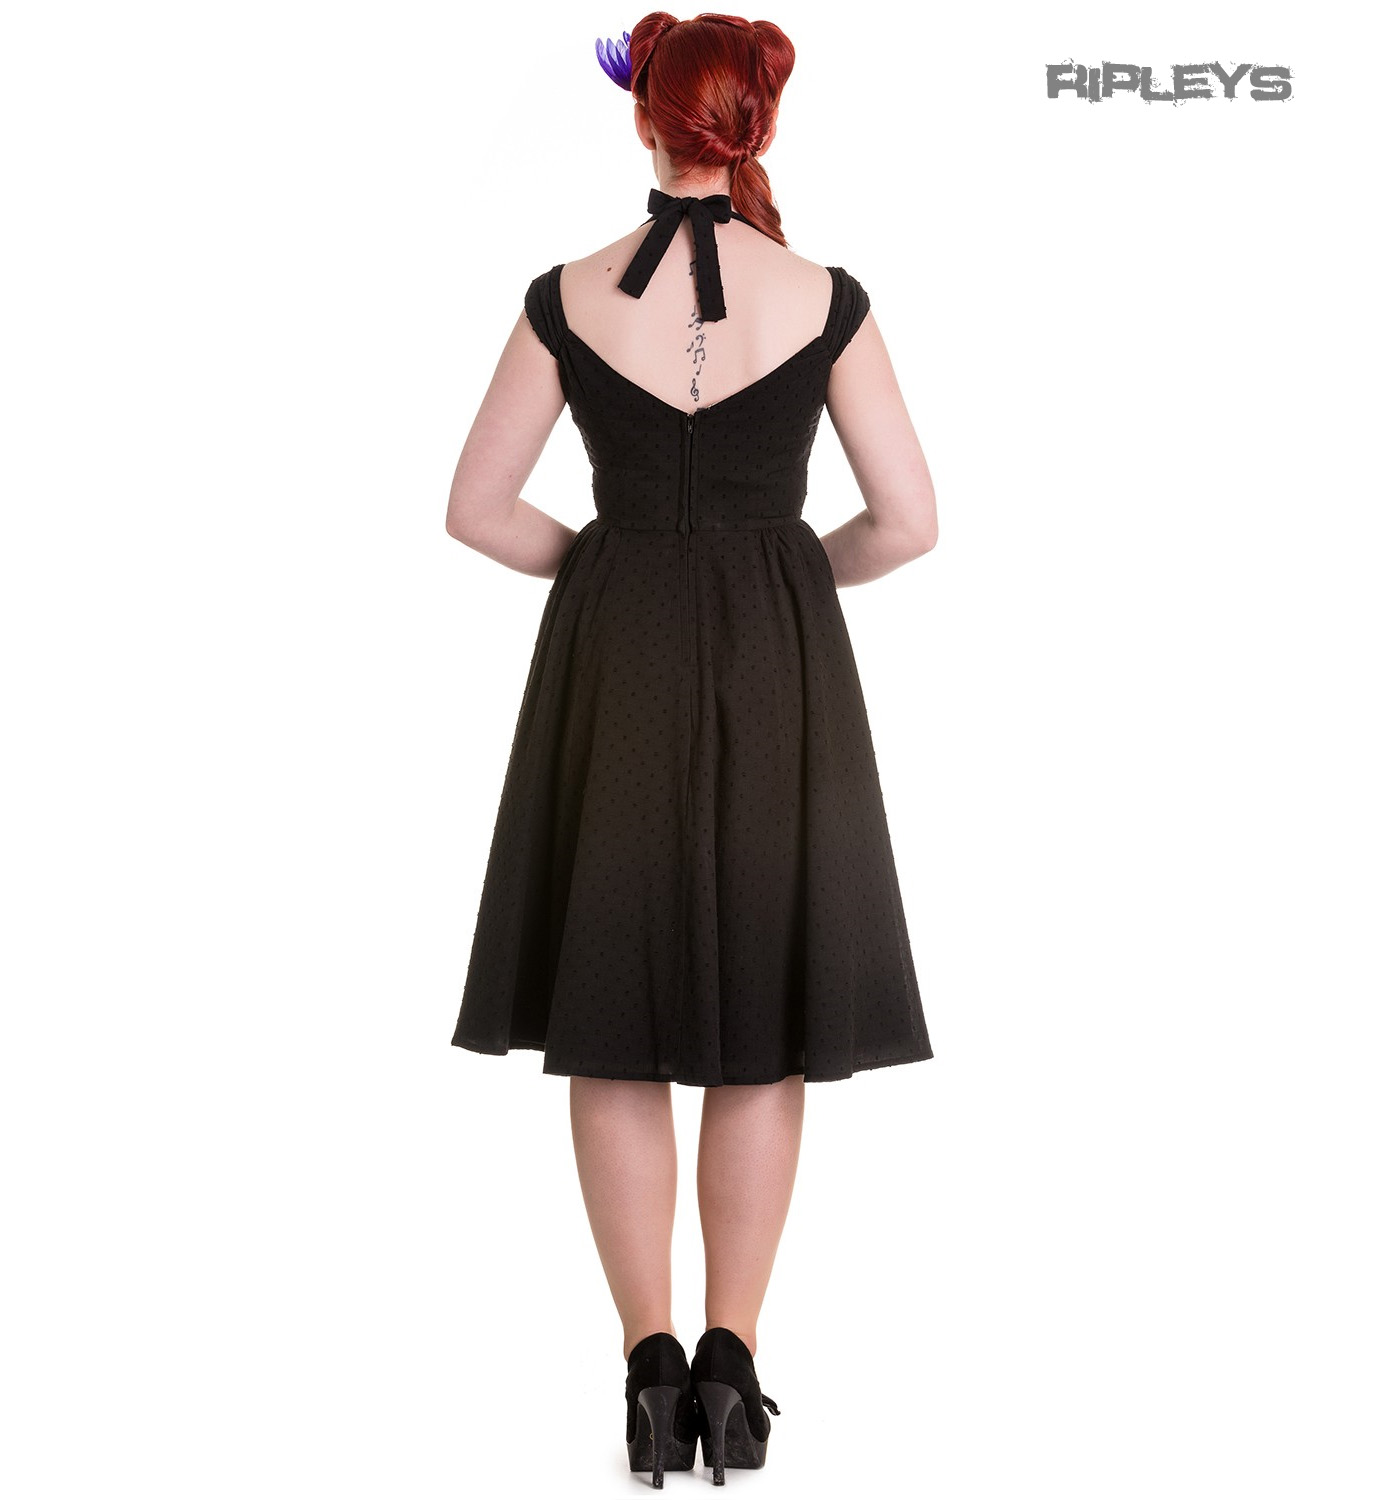 Hell-Bunny-Pin-Up-Summer-50s-Dress-Vintage-Rockabilly-EVELINE-Black-All-Sizes thumbnail 4